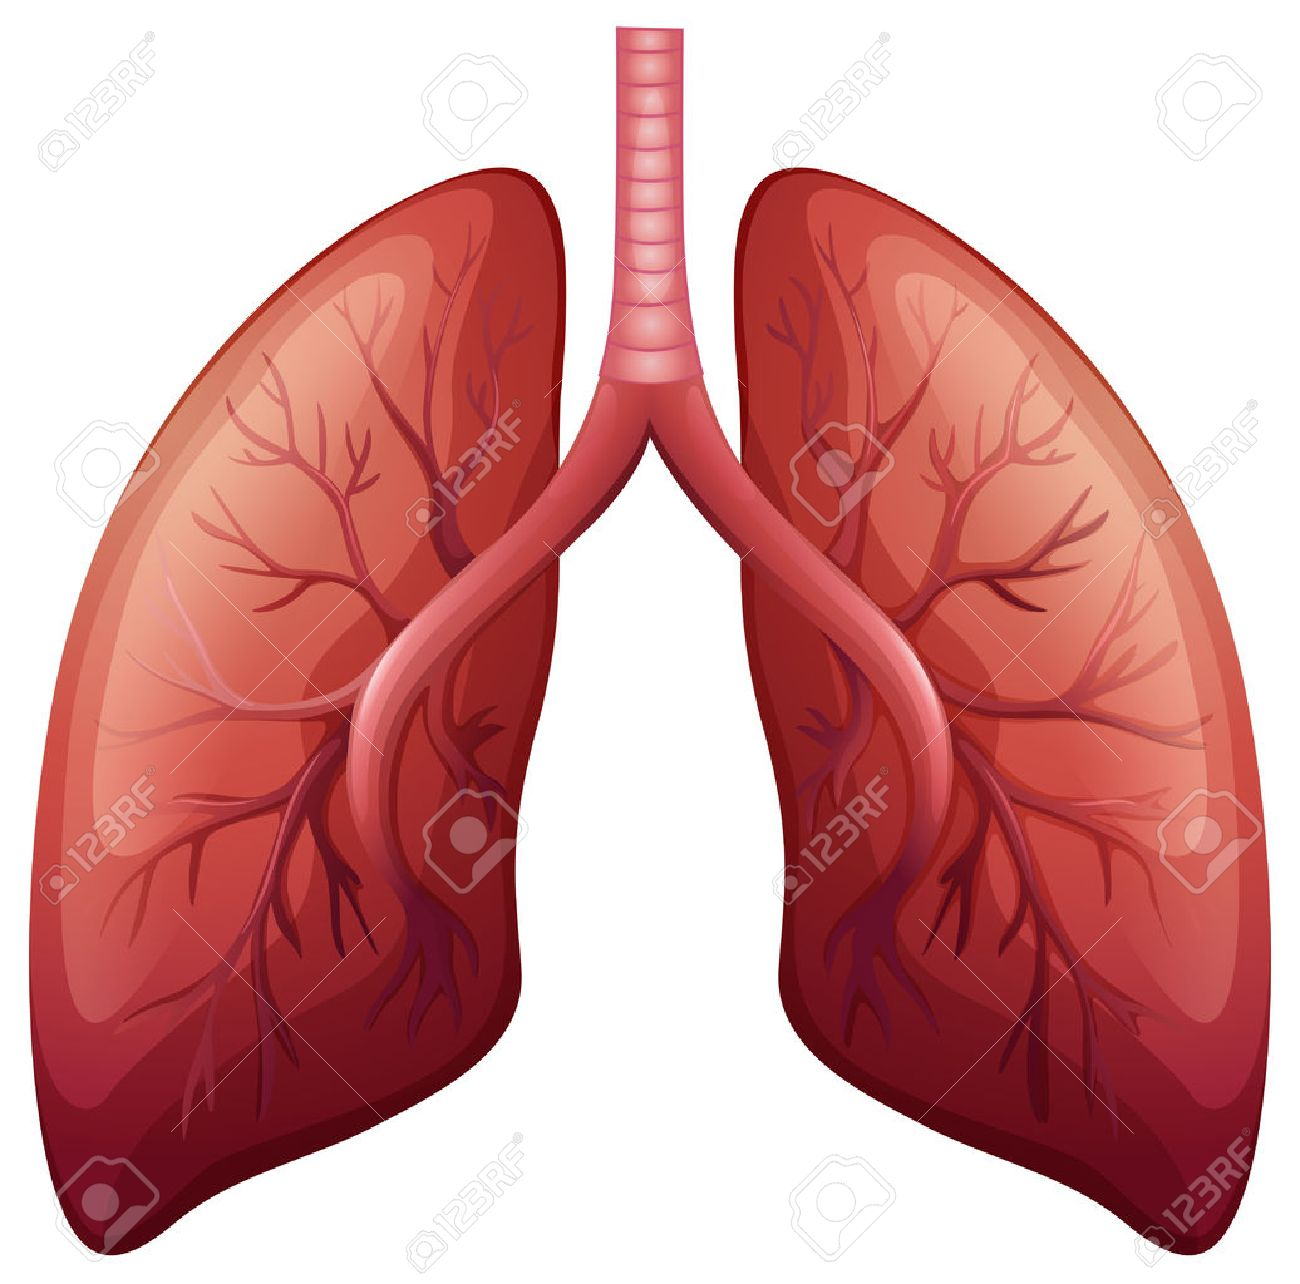 Lungs images stock pictures royalty free lungs photos and stock lung cancer diagram in detail illustration ccuart Images